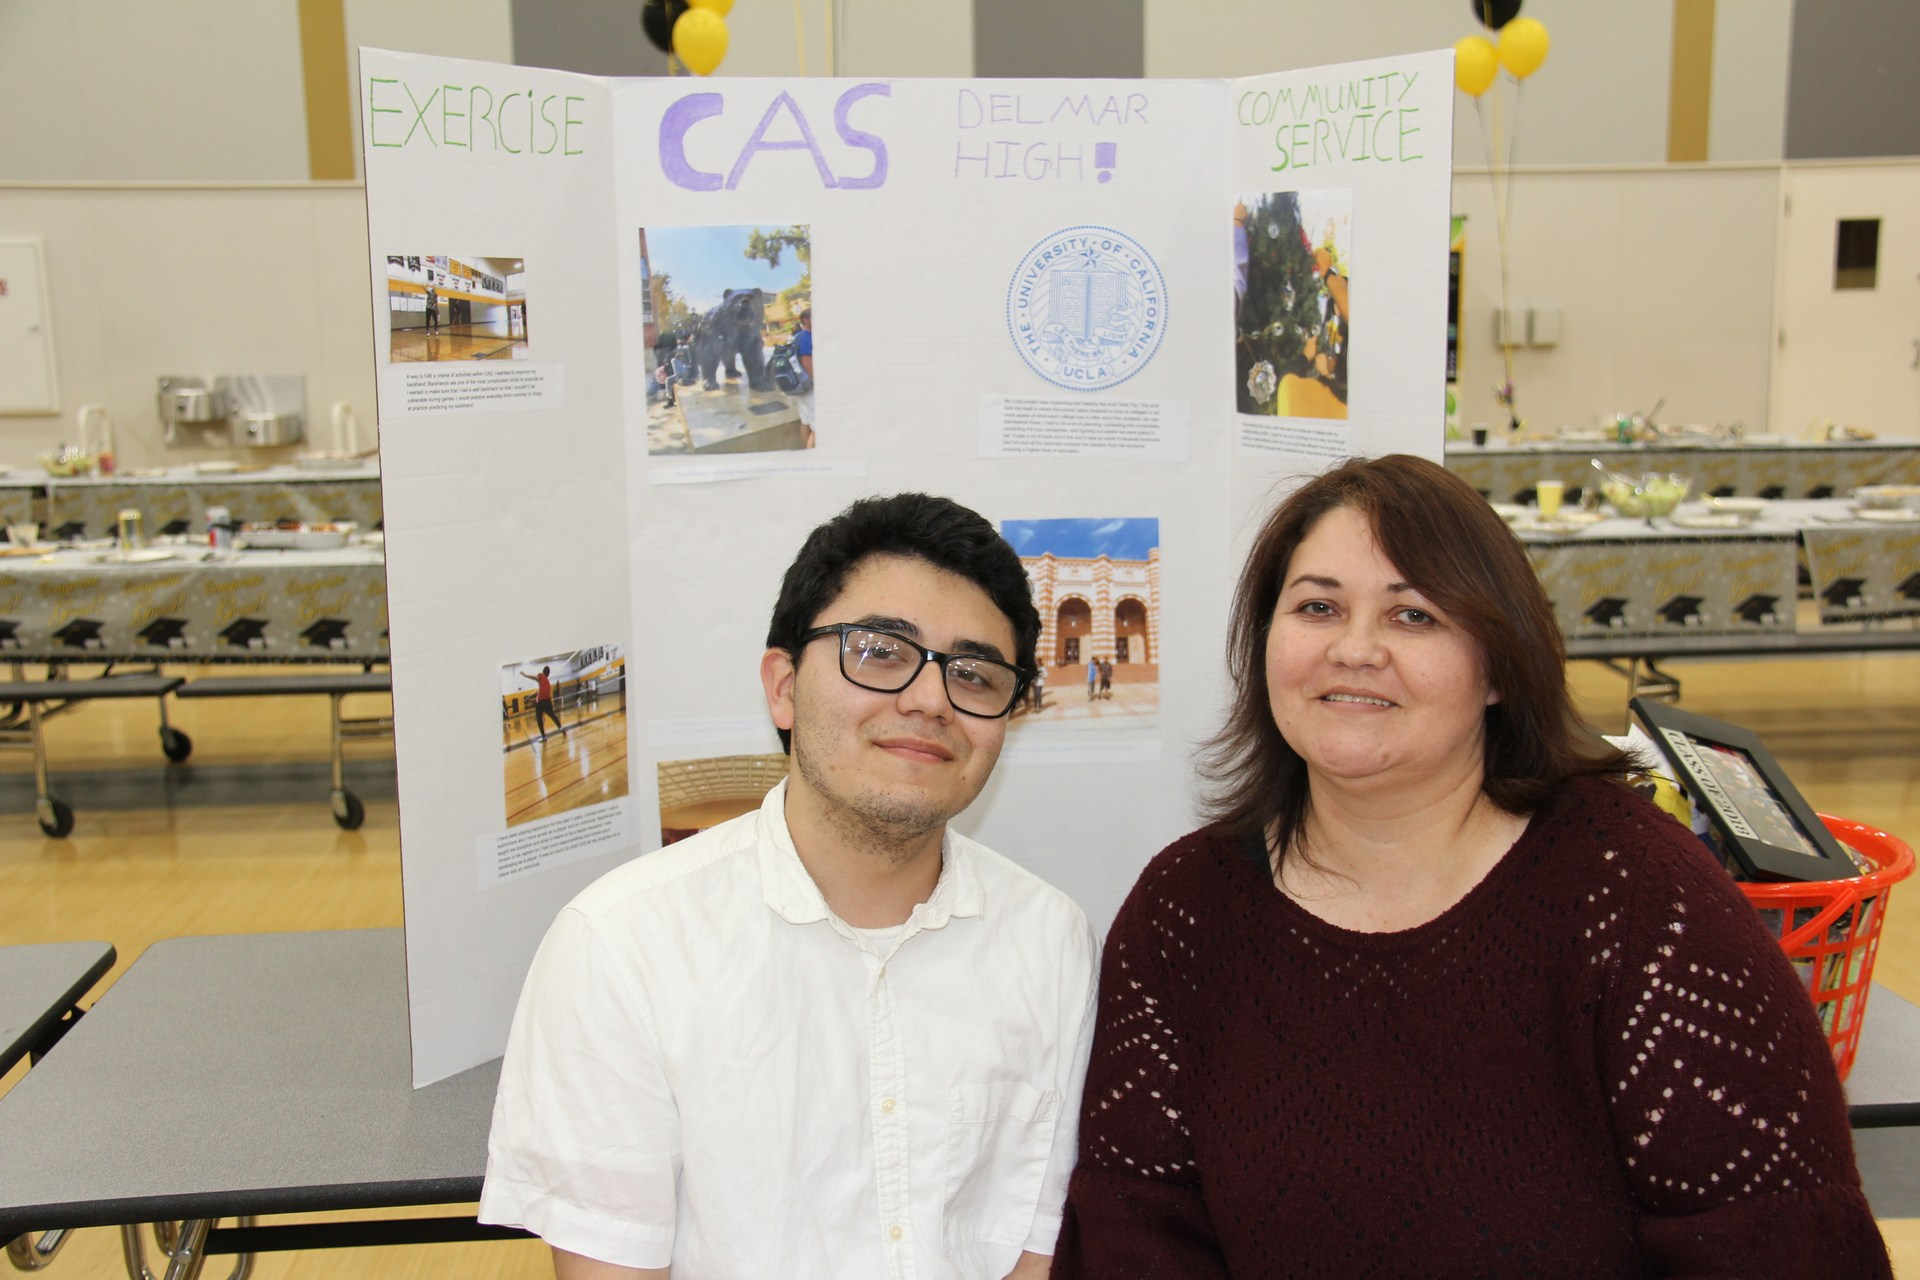 Image of IB Diploma Candidate with his presentation board at CAS Celebration Event